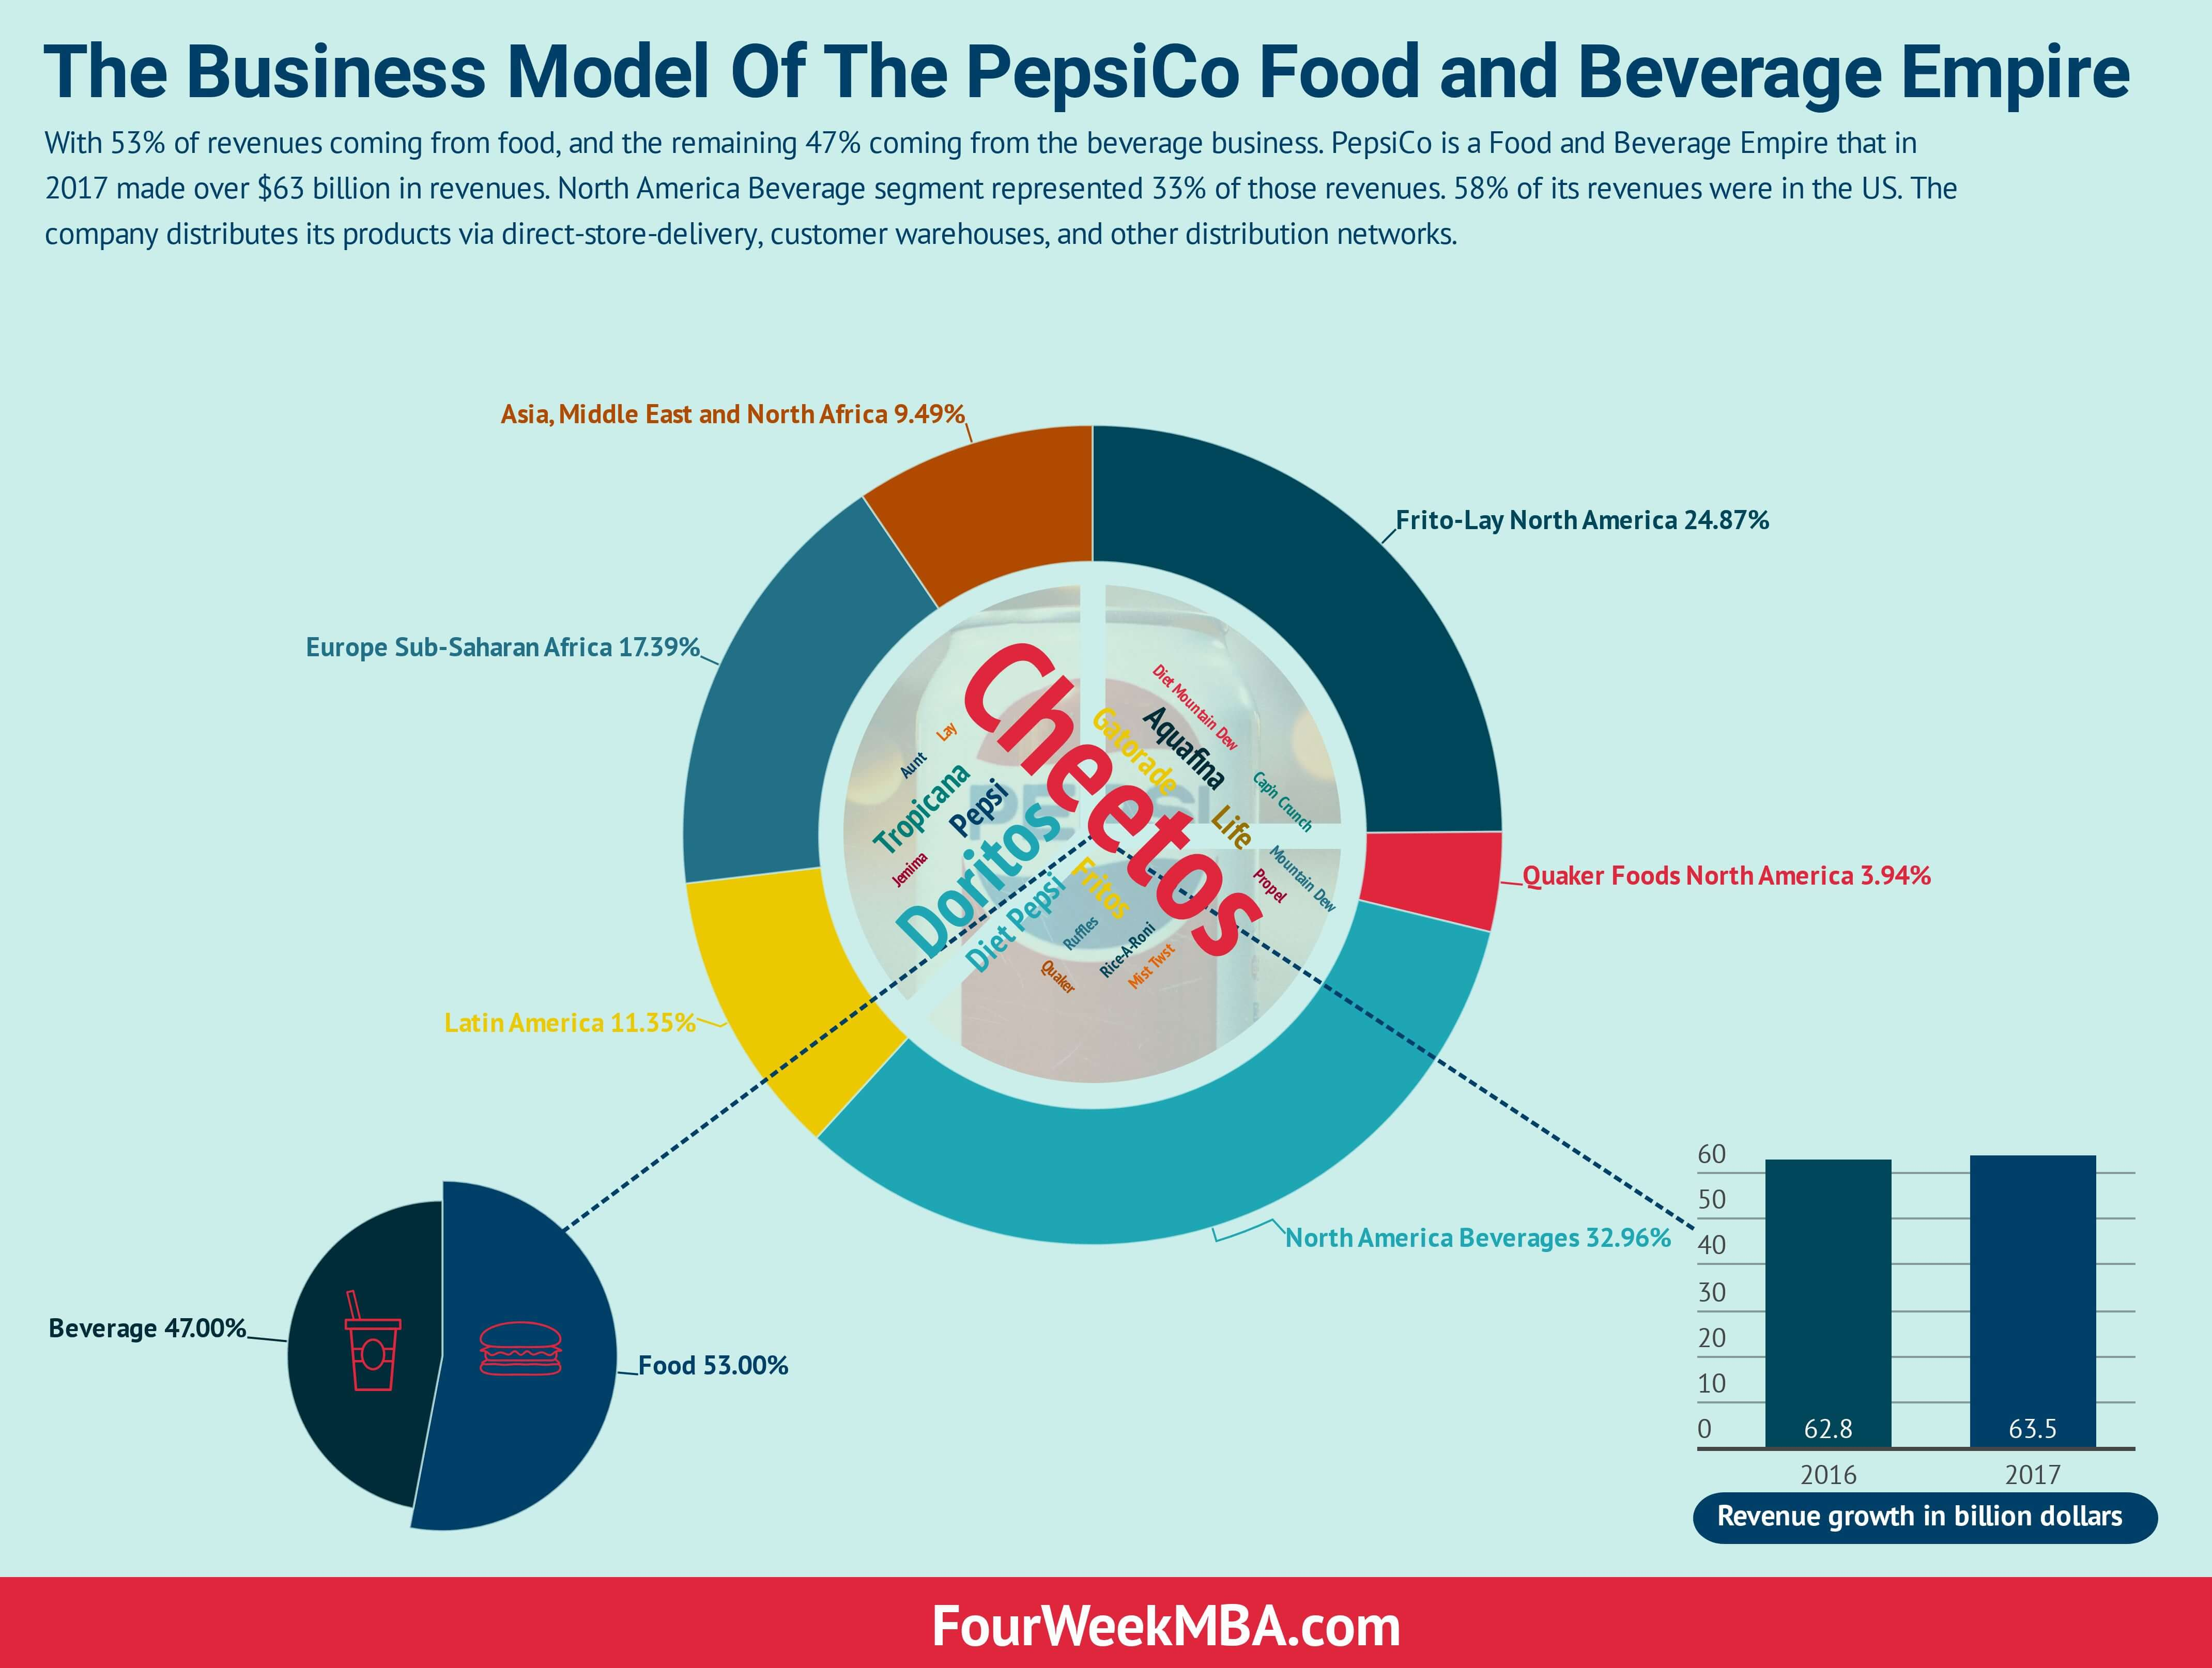 The Business Model Of The PepsiCo Food and Beverage Empire - FourWeekMBA